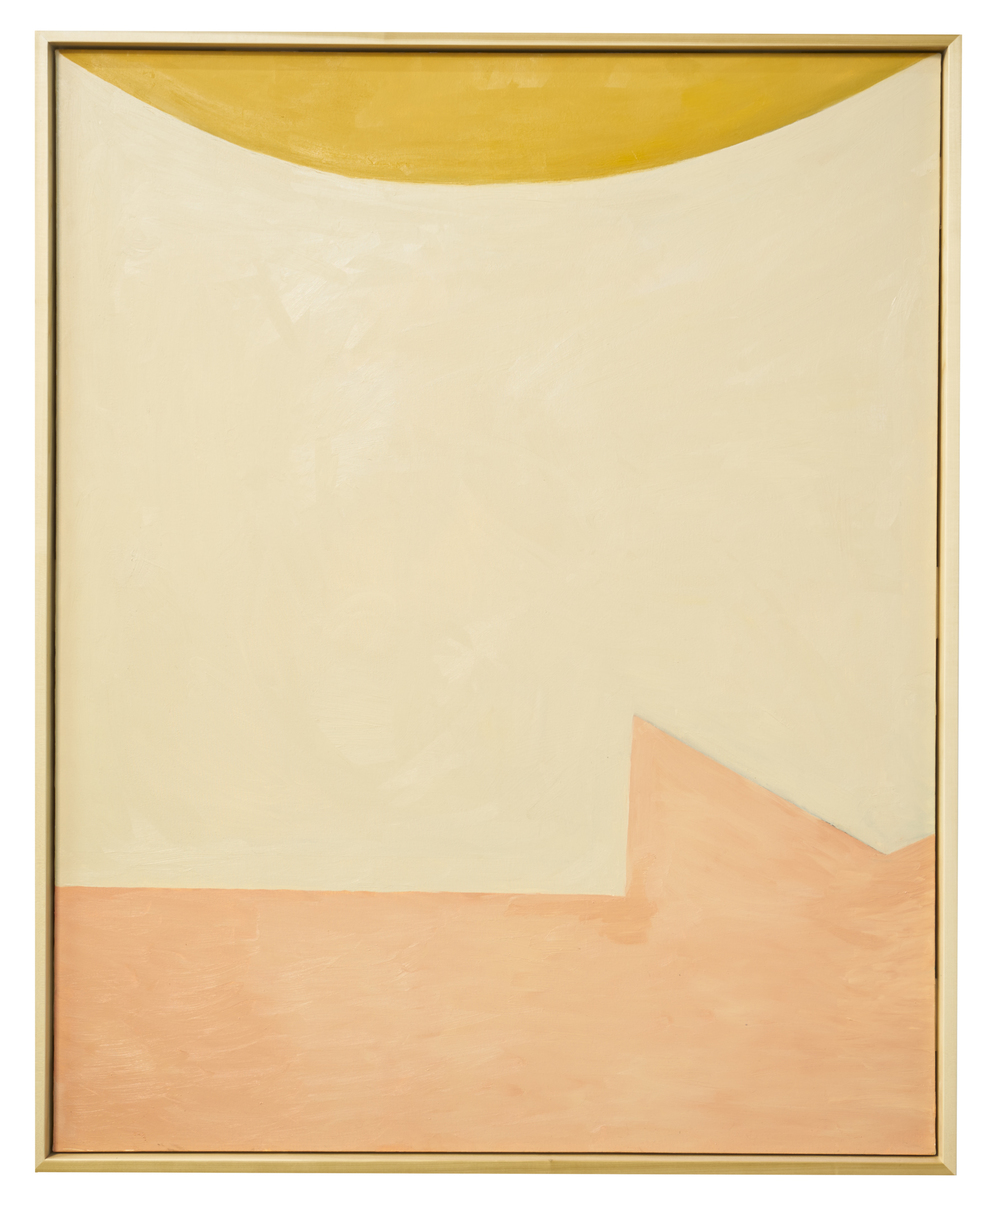 nude woman under the sun, 2015  oil on canvas  60 x 48 inches (152.4 x 121.9 cm)